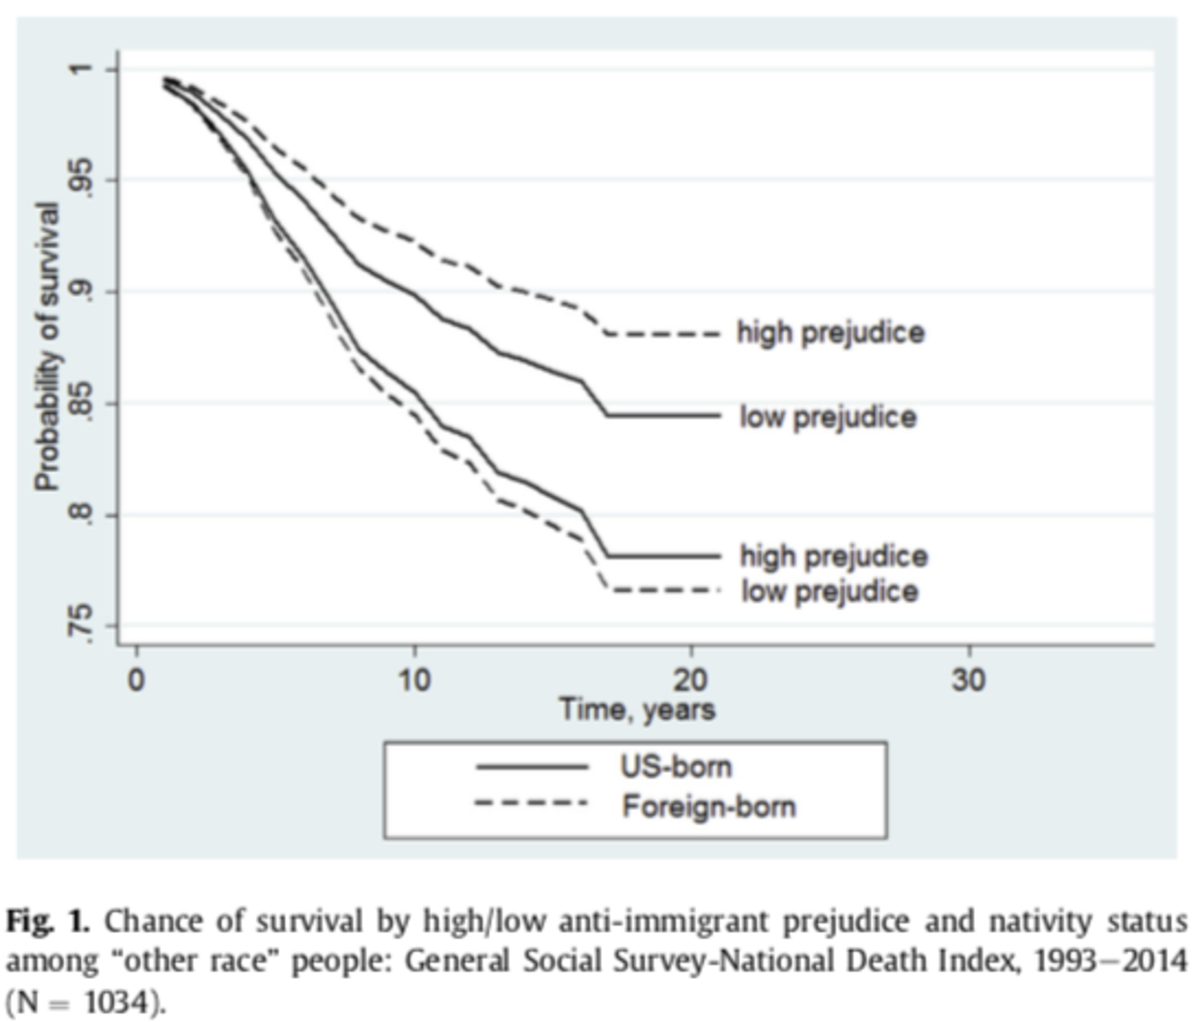 Community-level prejudice and mortality among immigrant groups.